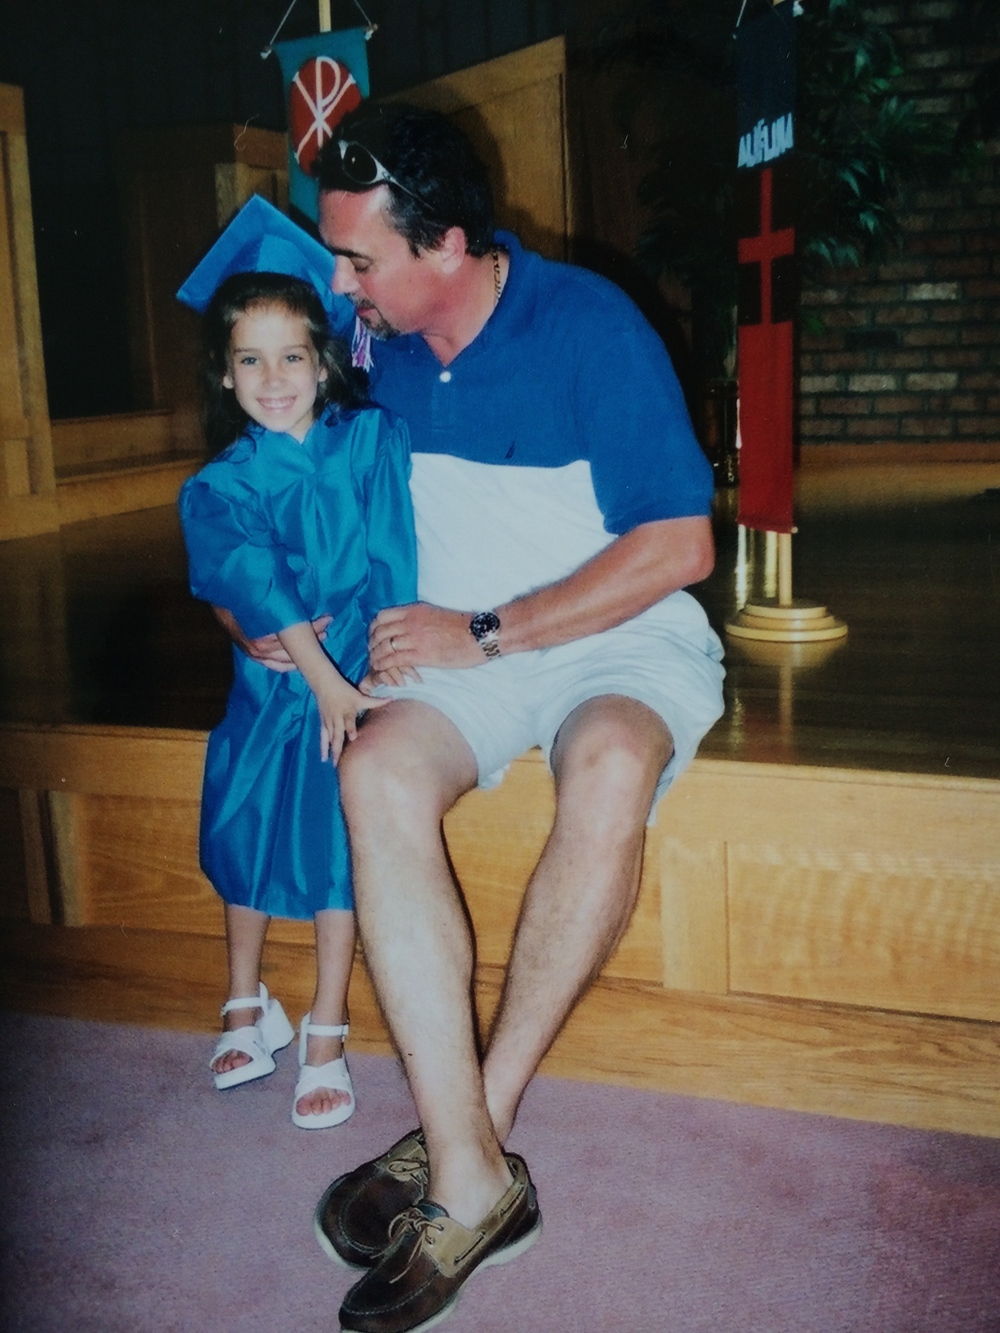 My dad and me at my preschool graduation